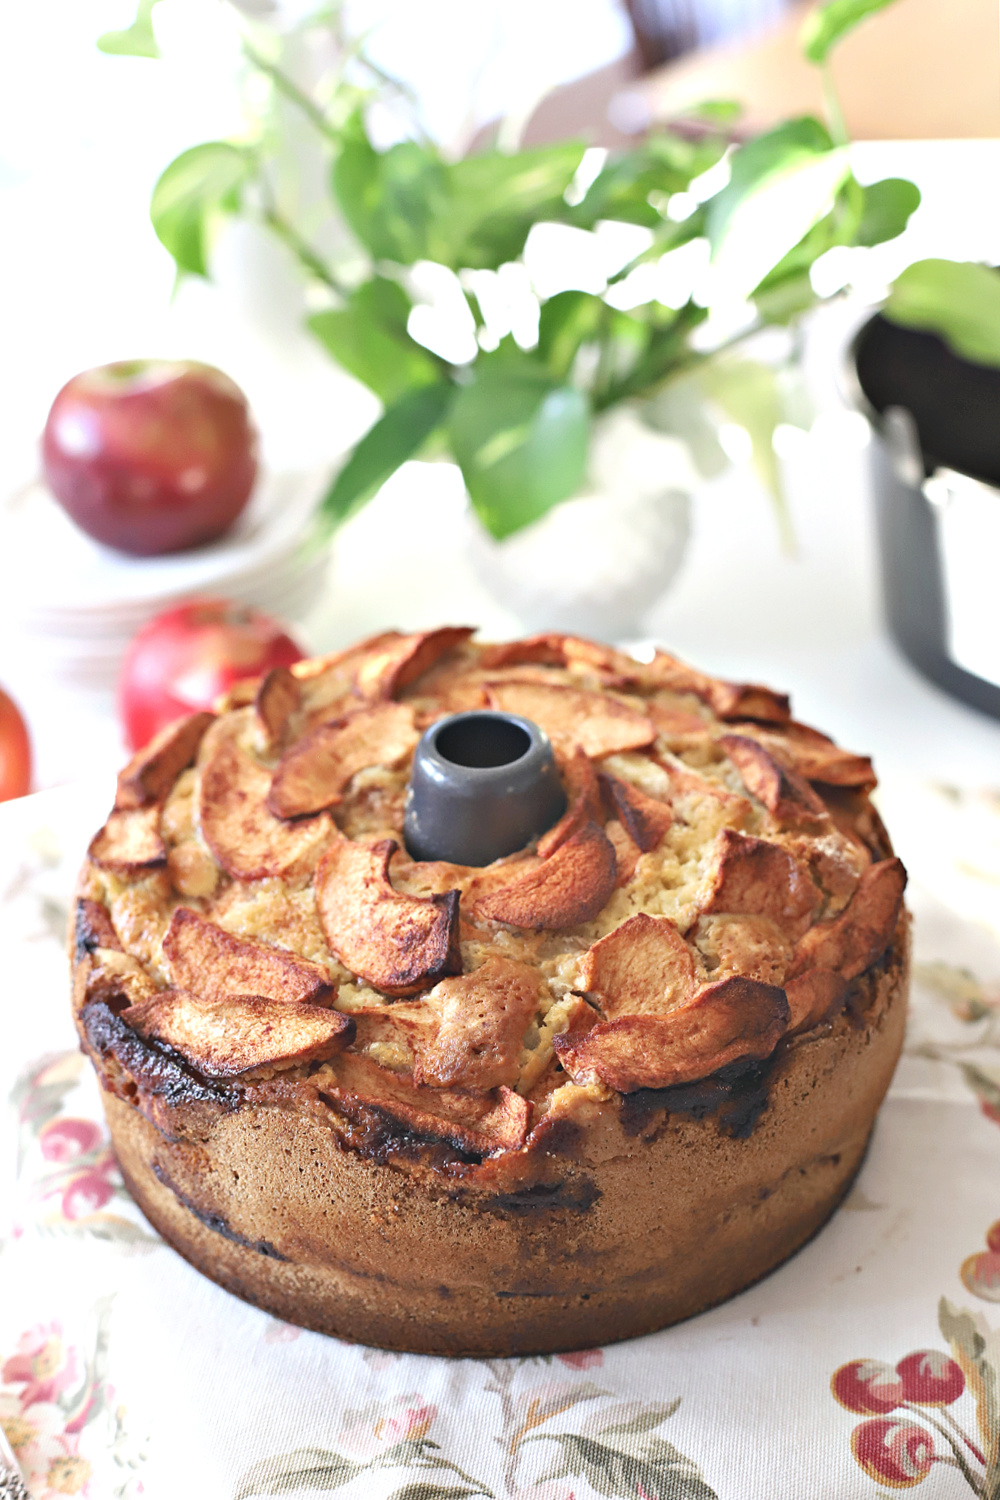 A moist and delicious cake from a vintage recipe is a favorite. Jewish apple cake has a center of cinnamon apples and more apples on top.